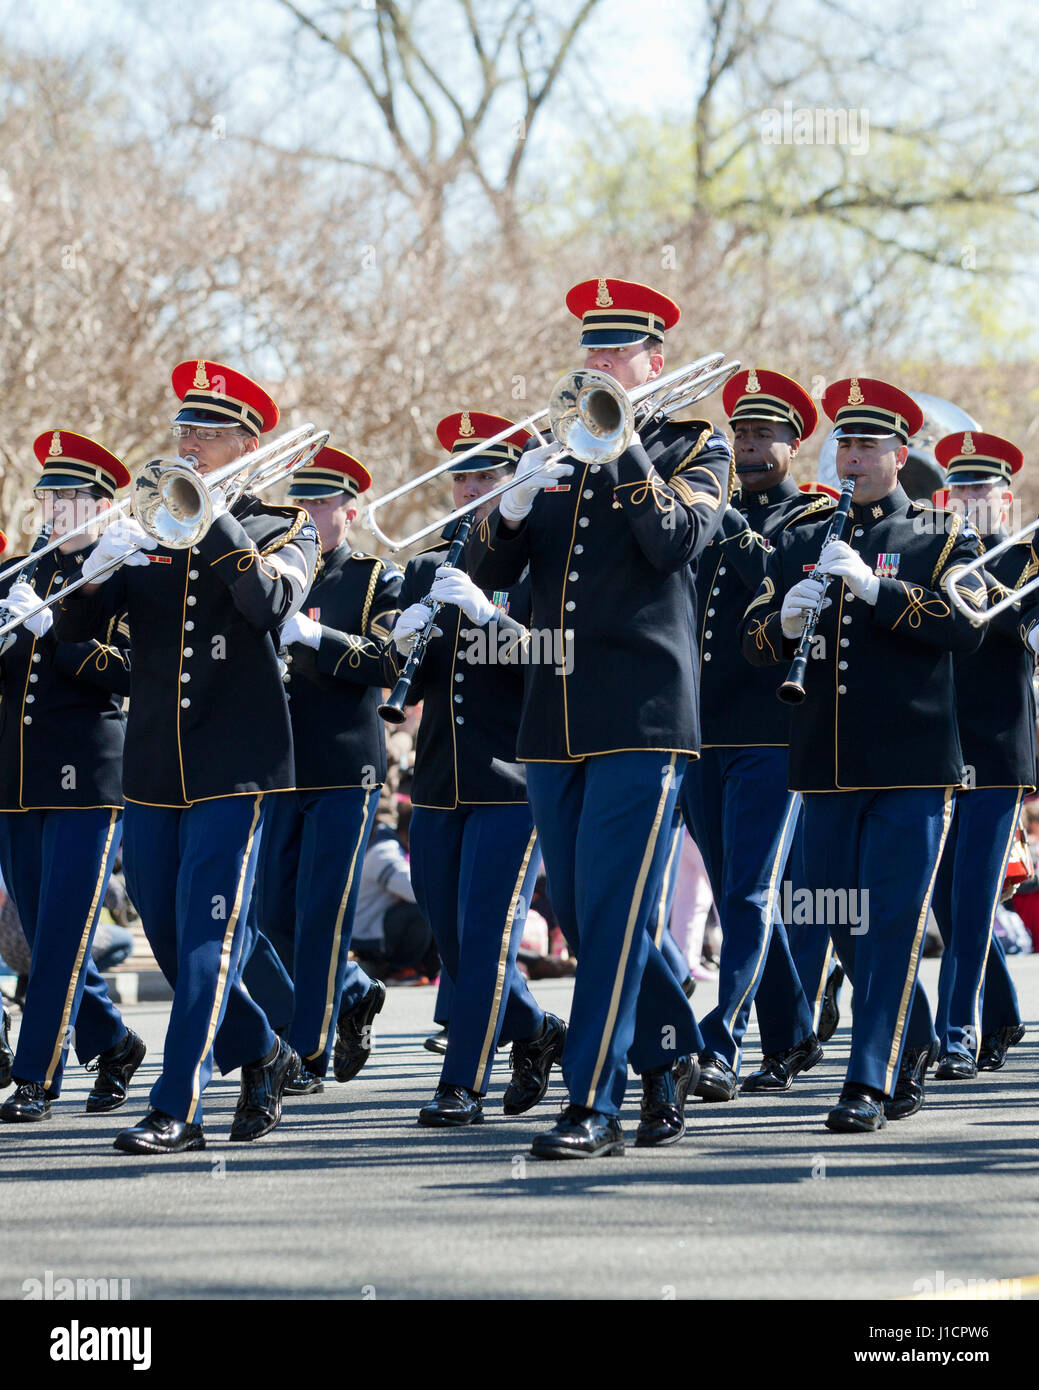 The US Army Band participating in a street parade - Washington, DC USA - Stock Image